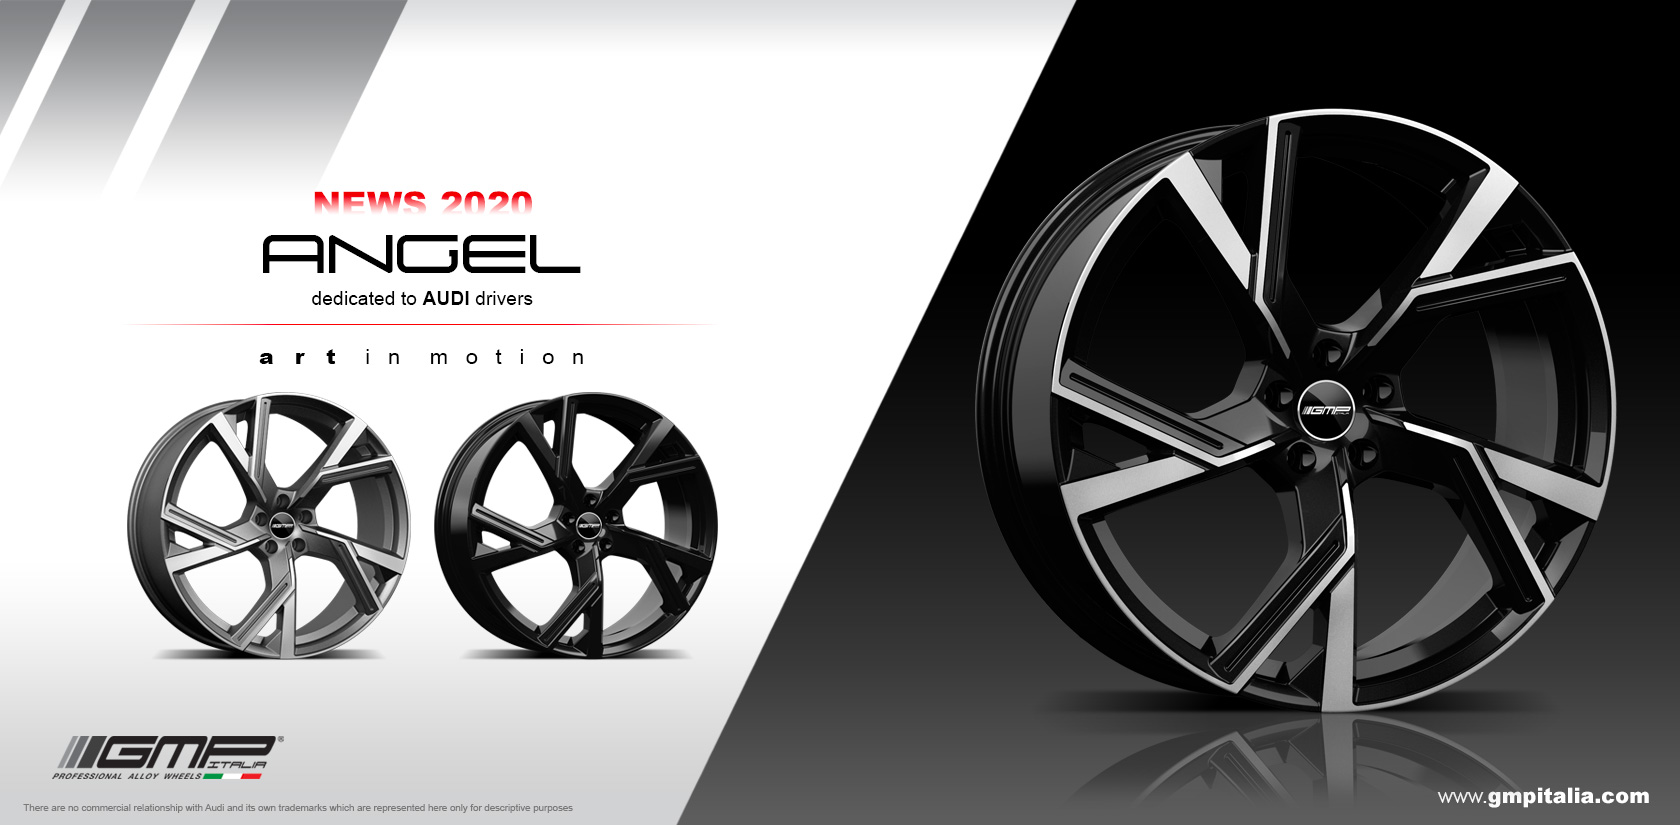 Production Of Alloy Wheels For Your Car Gmp Italia